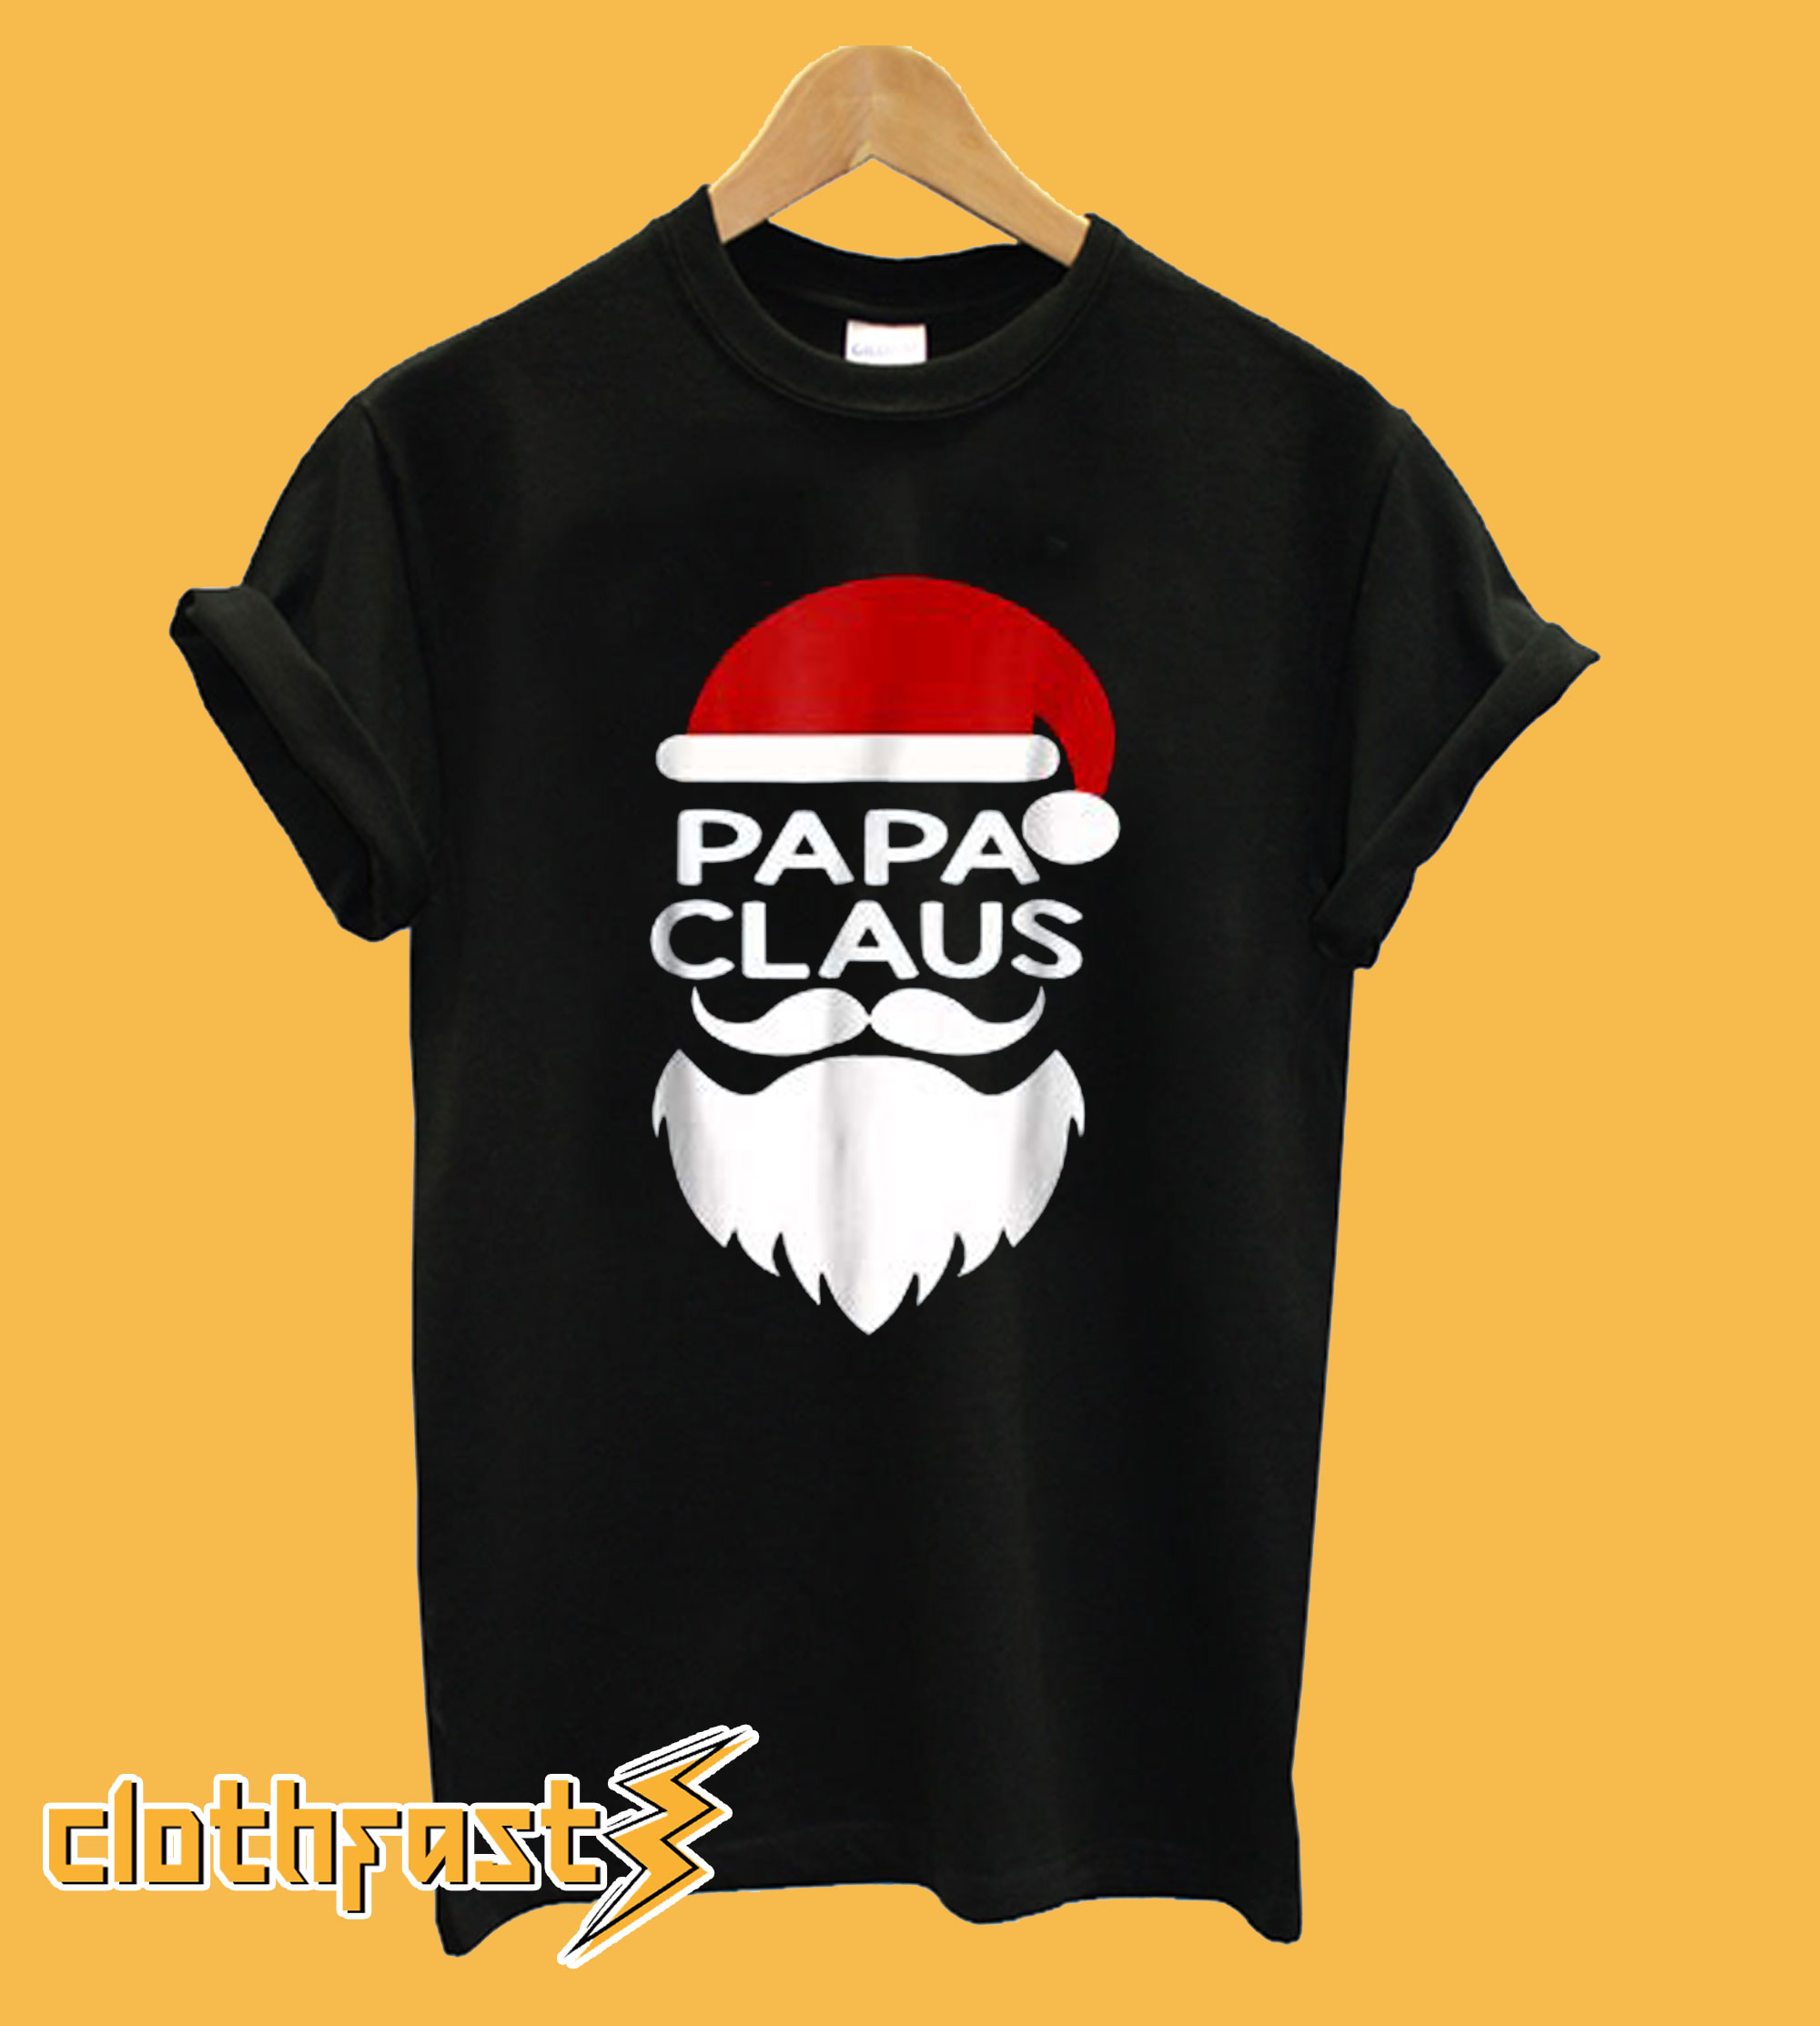 Papa Claus Family Christmas T-shirt